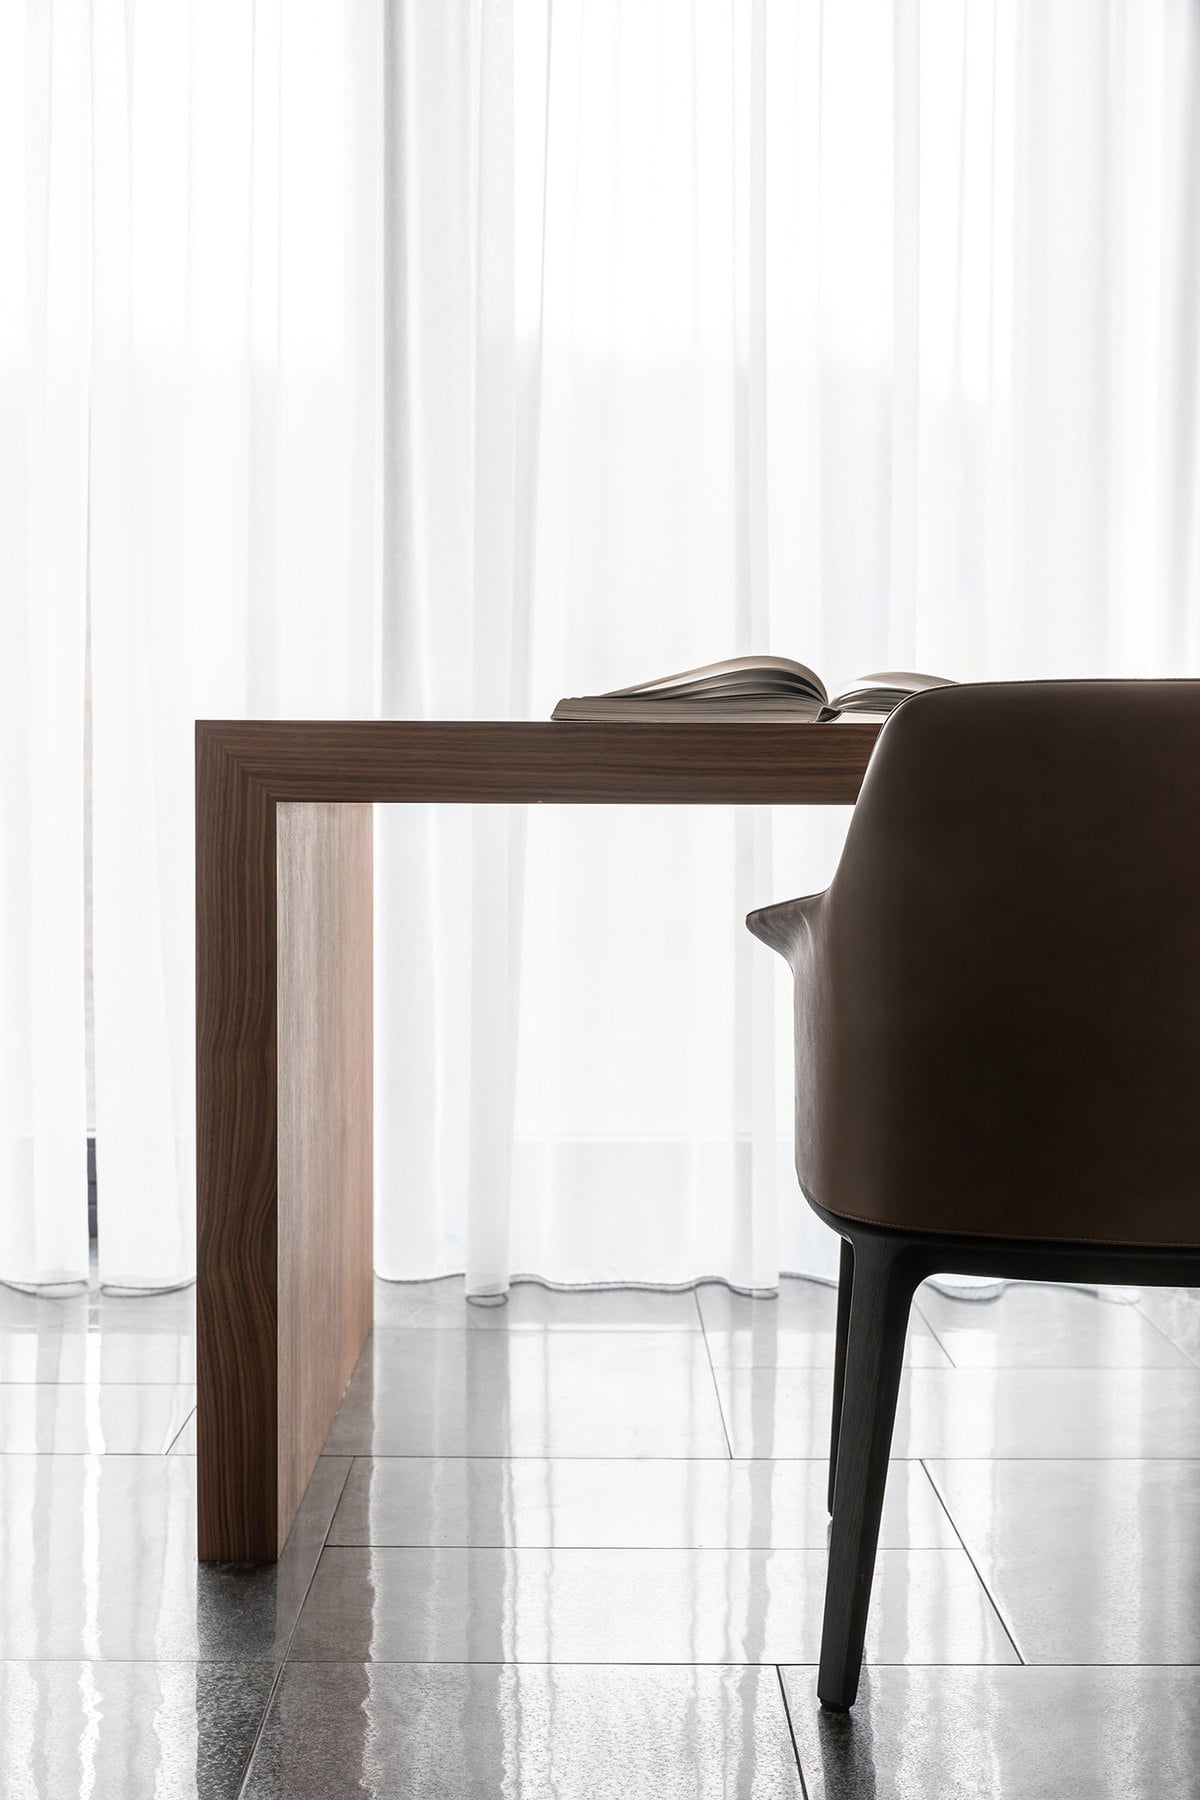 This waterfall built-in wooden desk is paired with a brown leather chair with comfortable armrests.